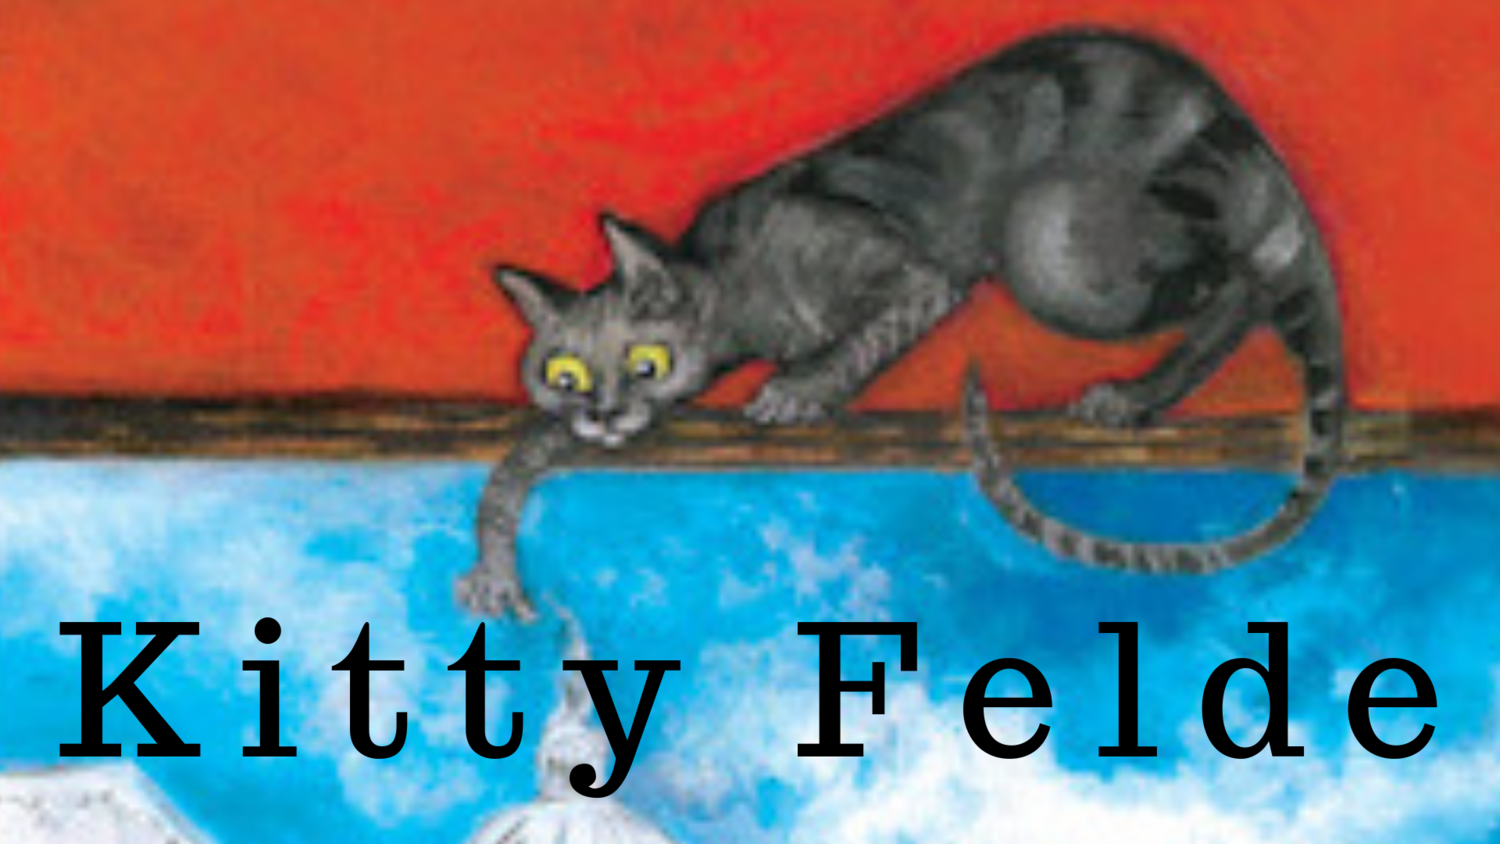 Kitty Felde